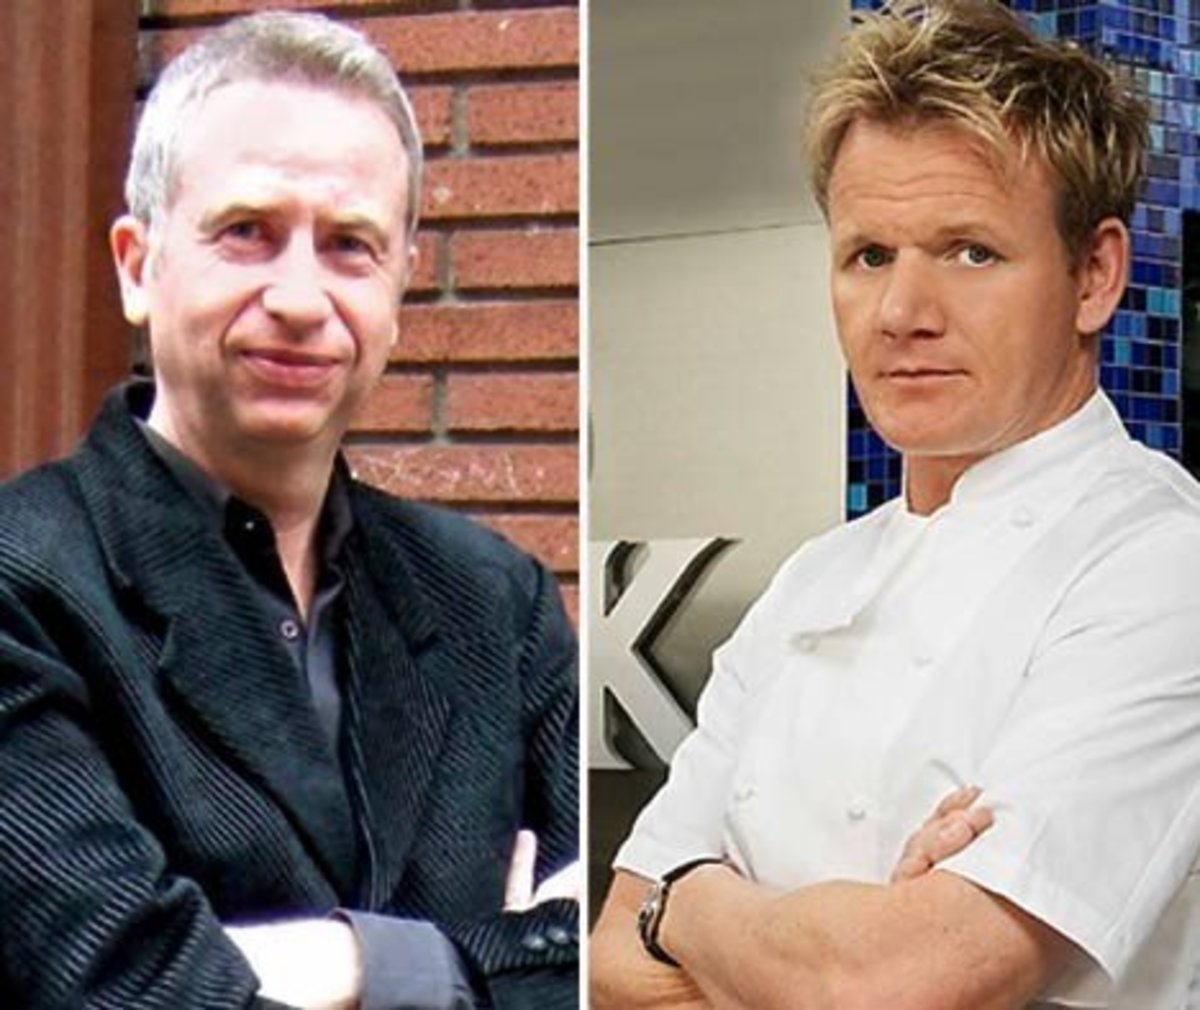 Martin Hyde actually sued chef Gordon Ramsay for ruining his reputation.